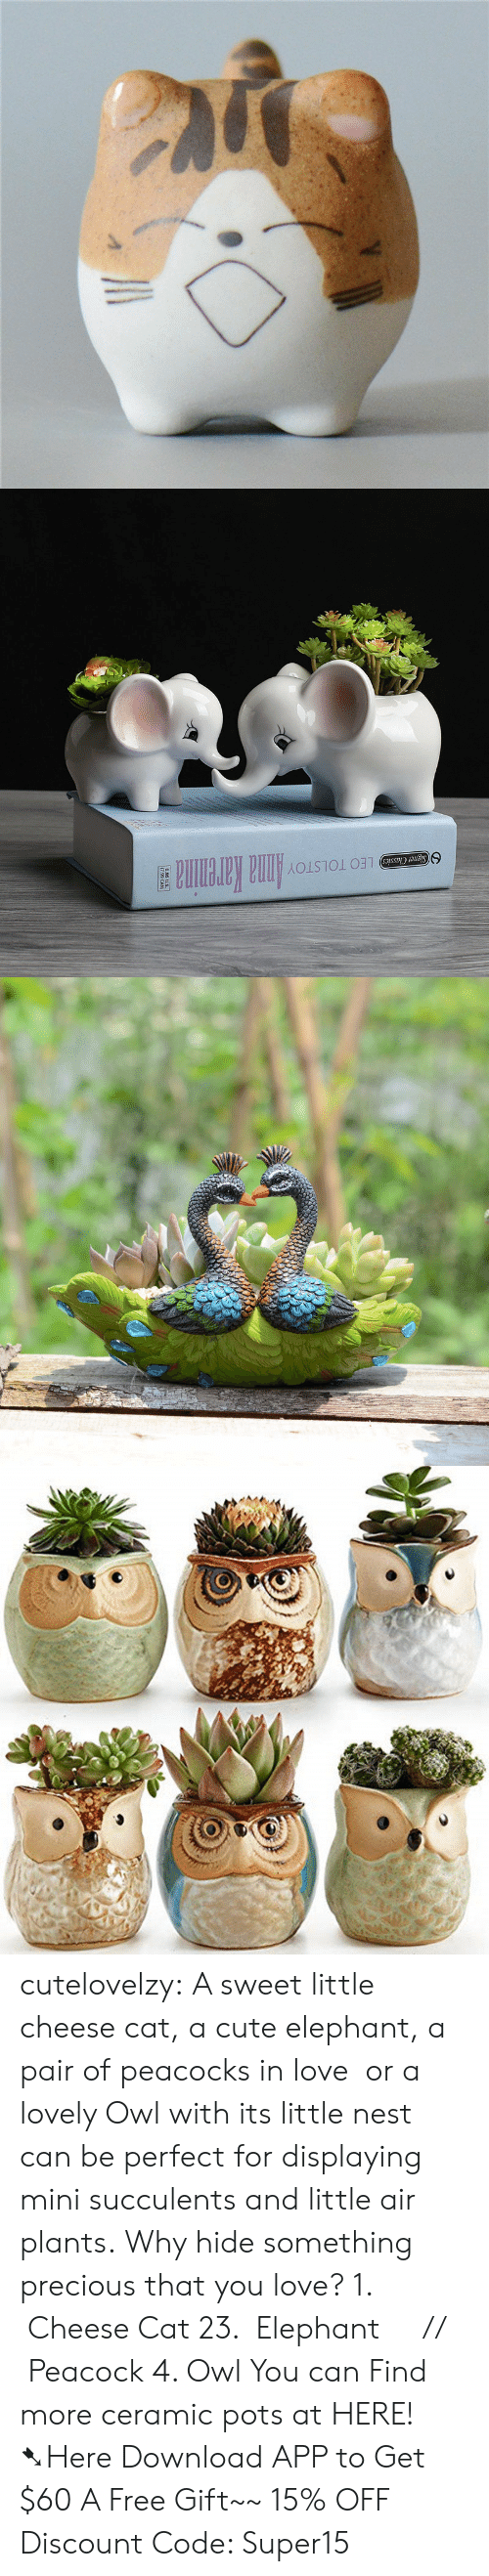 Cute, Love, and Precious: LEO TOLSTOYAnna Karenina  Signet Classics cutelovelzy: A sweet little cheese cat, a cute elephant, a pair of peacocks in love  or a lovely Owl with its little nest can be perfect for displaying mini succulents and little air plants. Why hide something precious that you love? 1.  Cheese Cat  23.  Elephant     //    Peacock  4. Owl  You can Find more ceramic pots at HERE!  ➷Here Download APP to Get $60  A Free Gift~~  15% OFF Discount Code: Super15